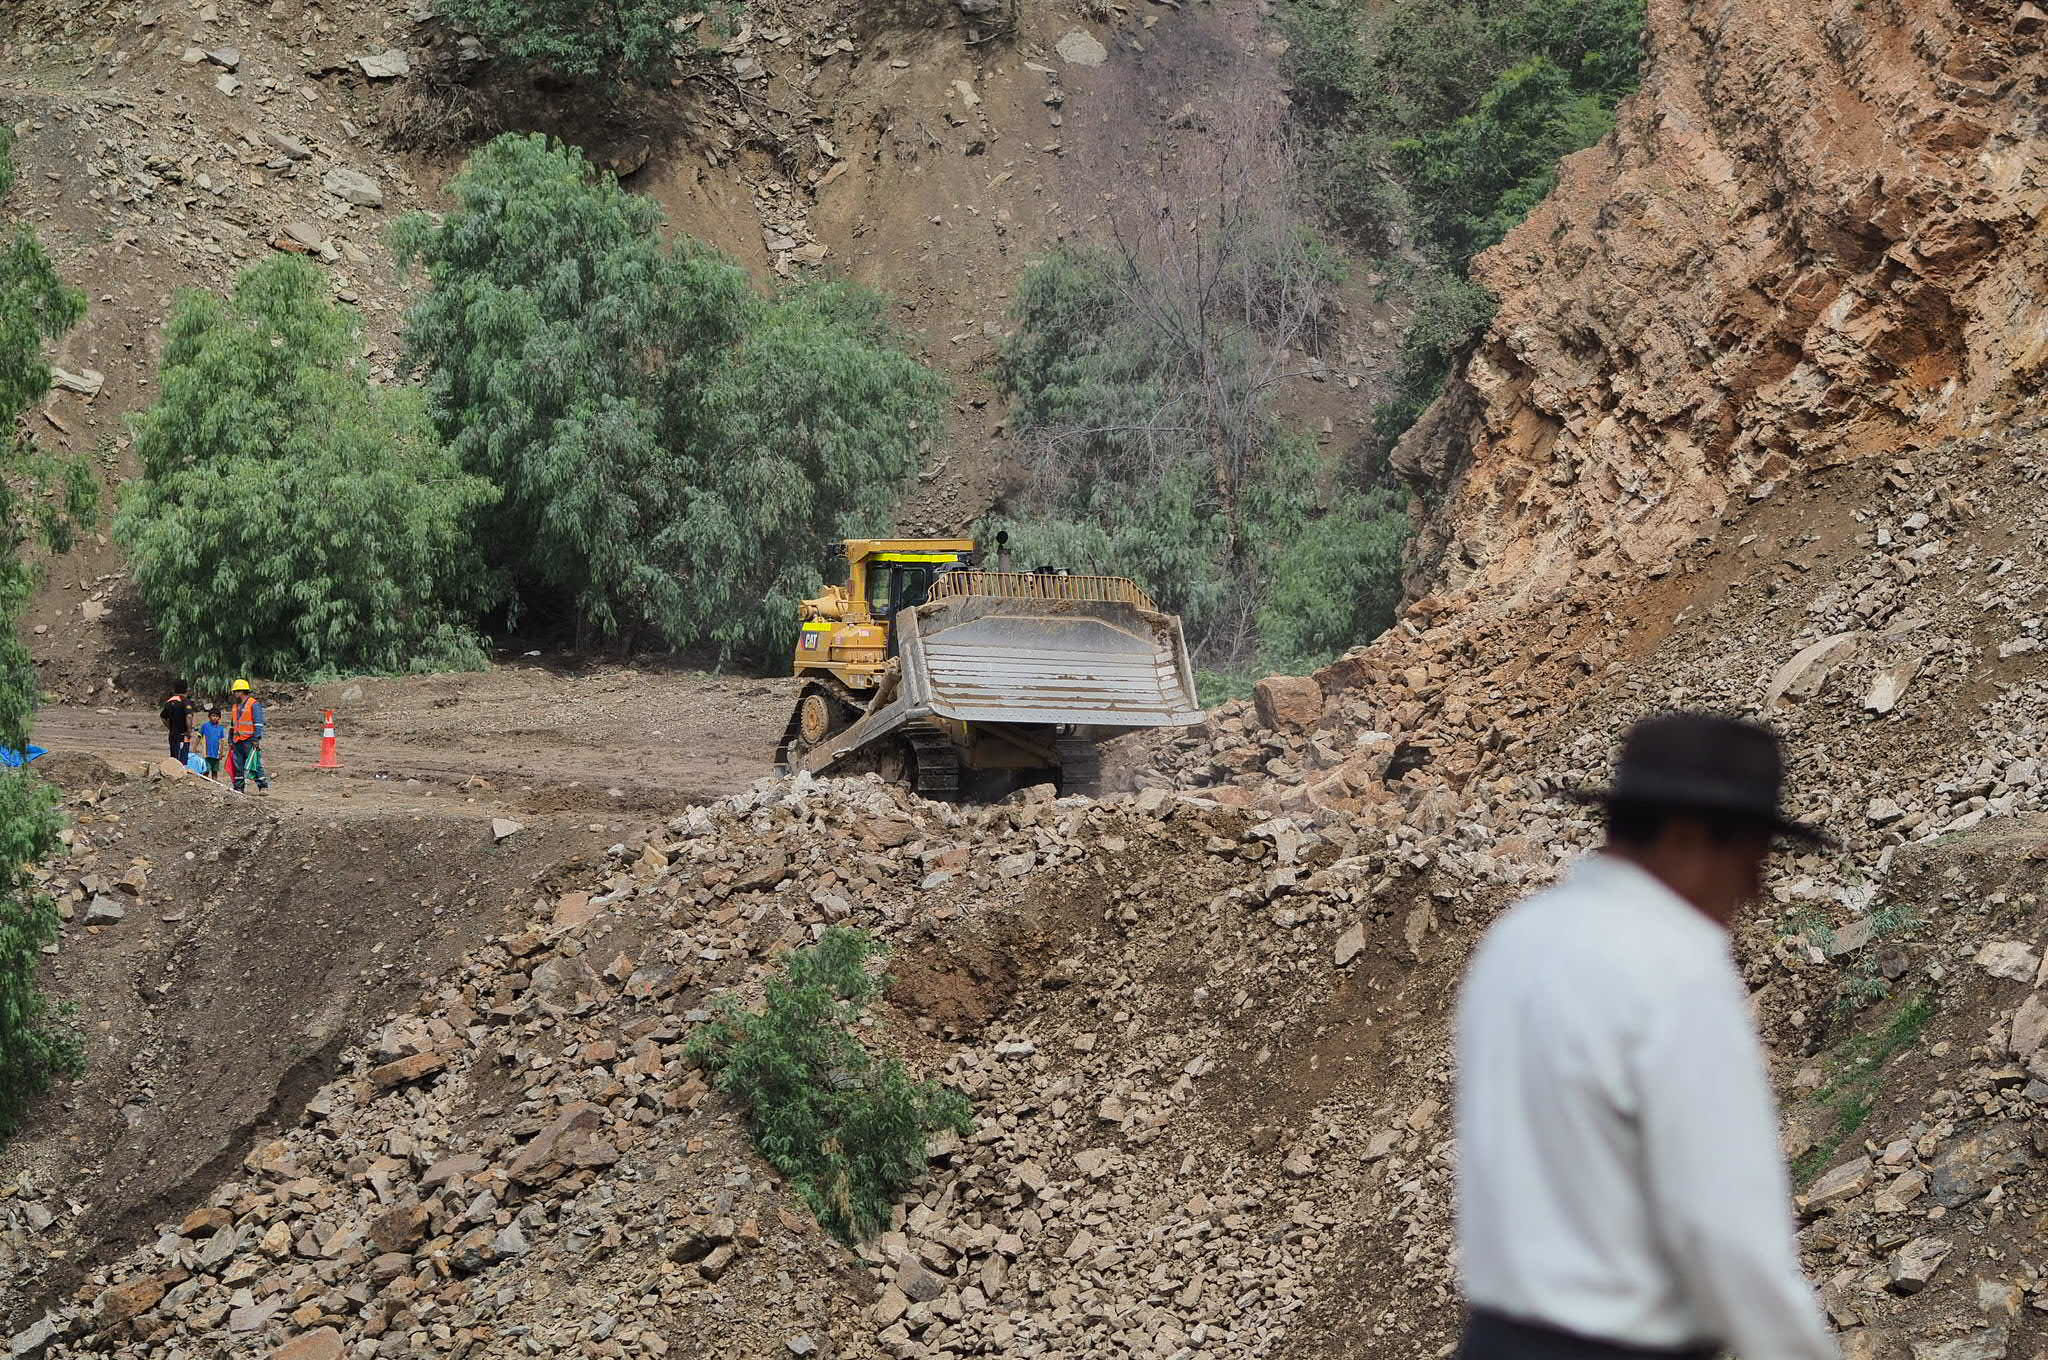 A crew is clearing the highway after a landslide blocked it.